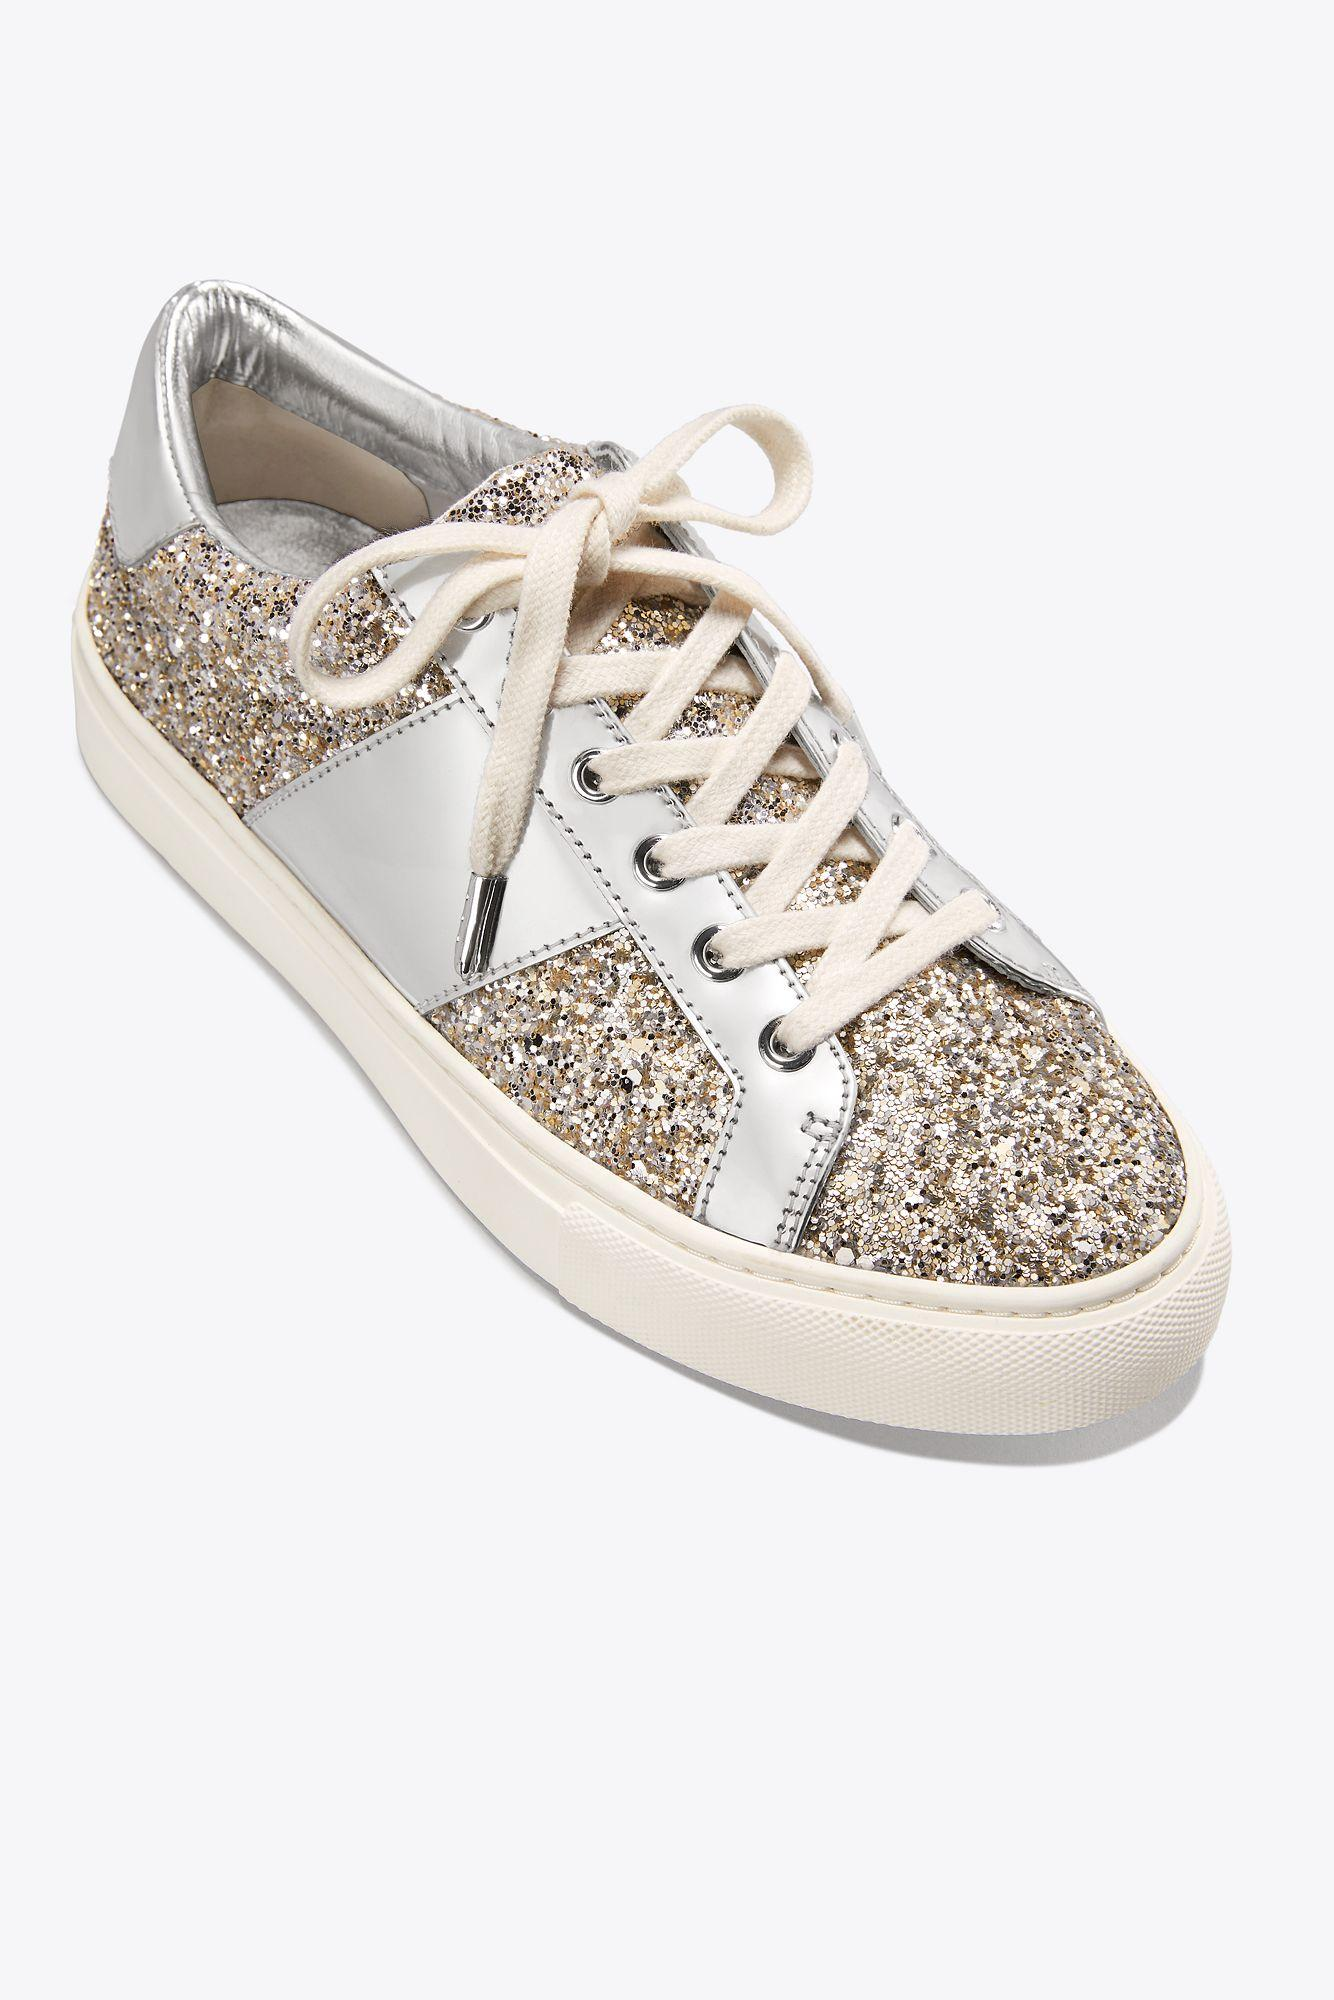 1fb36c258 Lyst - Tory Burch Carter Glitter Lace-up Sneaker